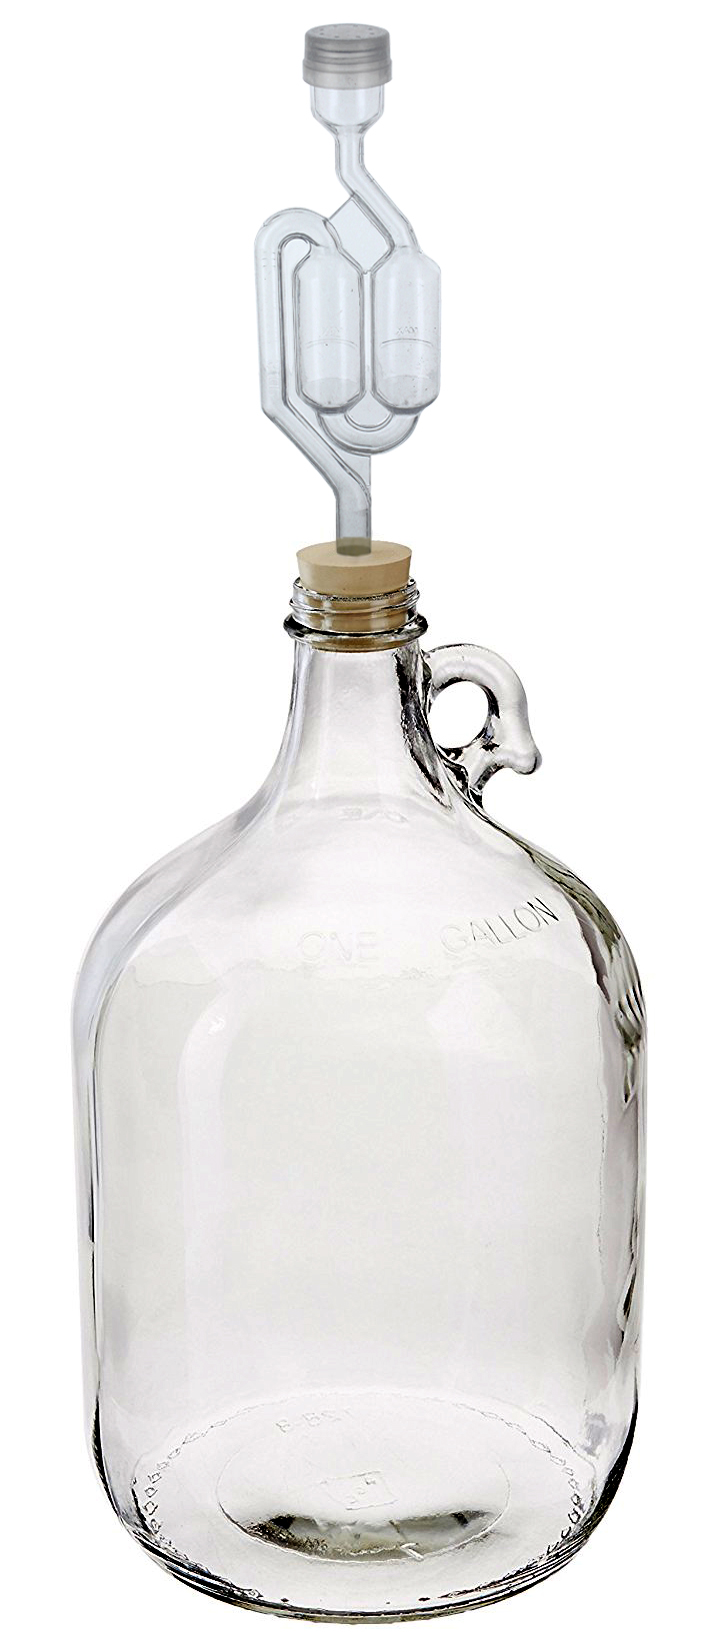 Pack of 2 AKUnlimited Twin Bubble Airlock and Carboy Bung